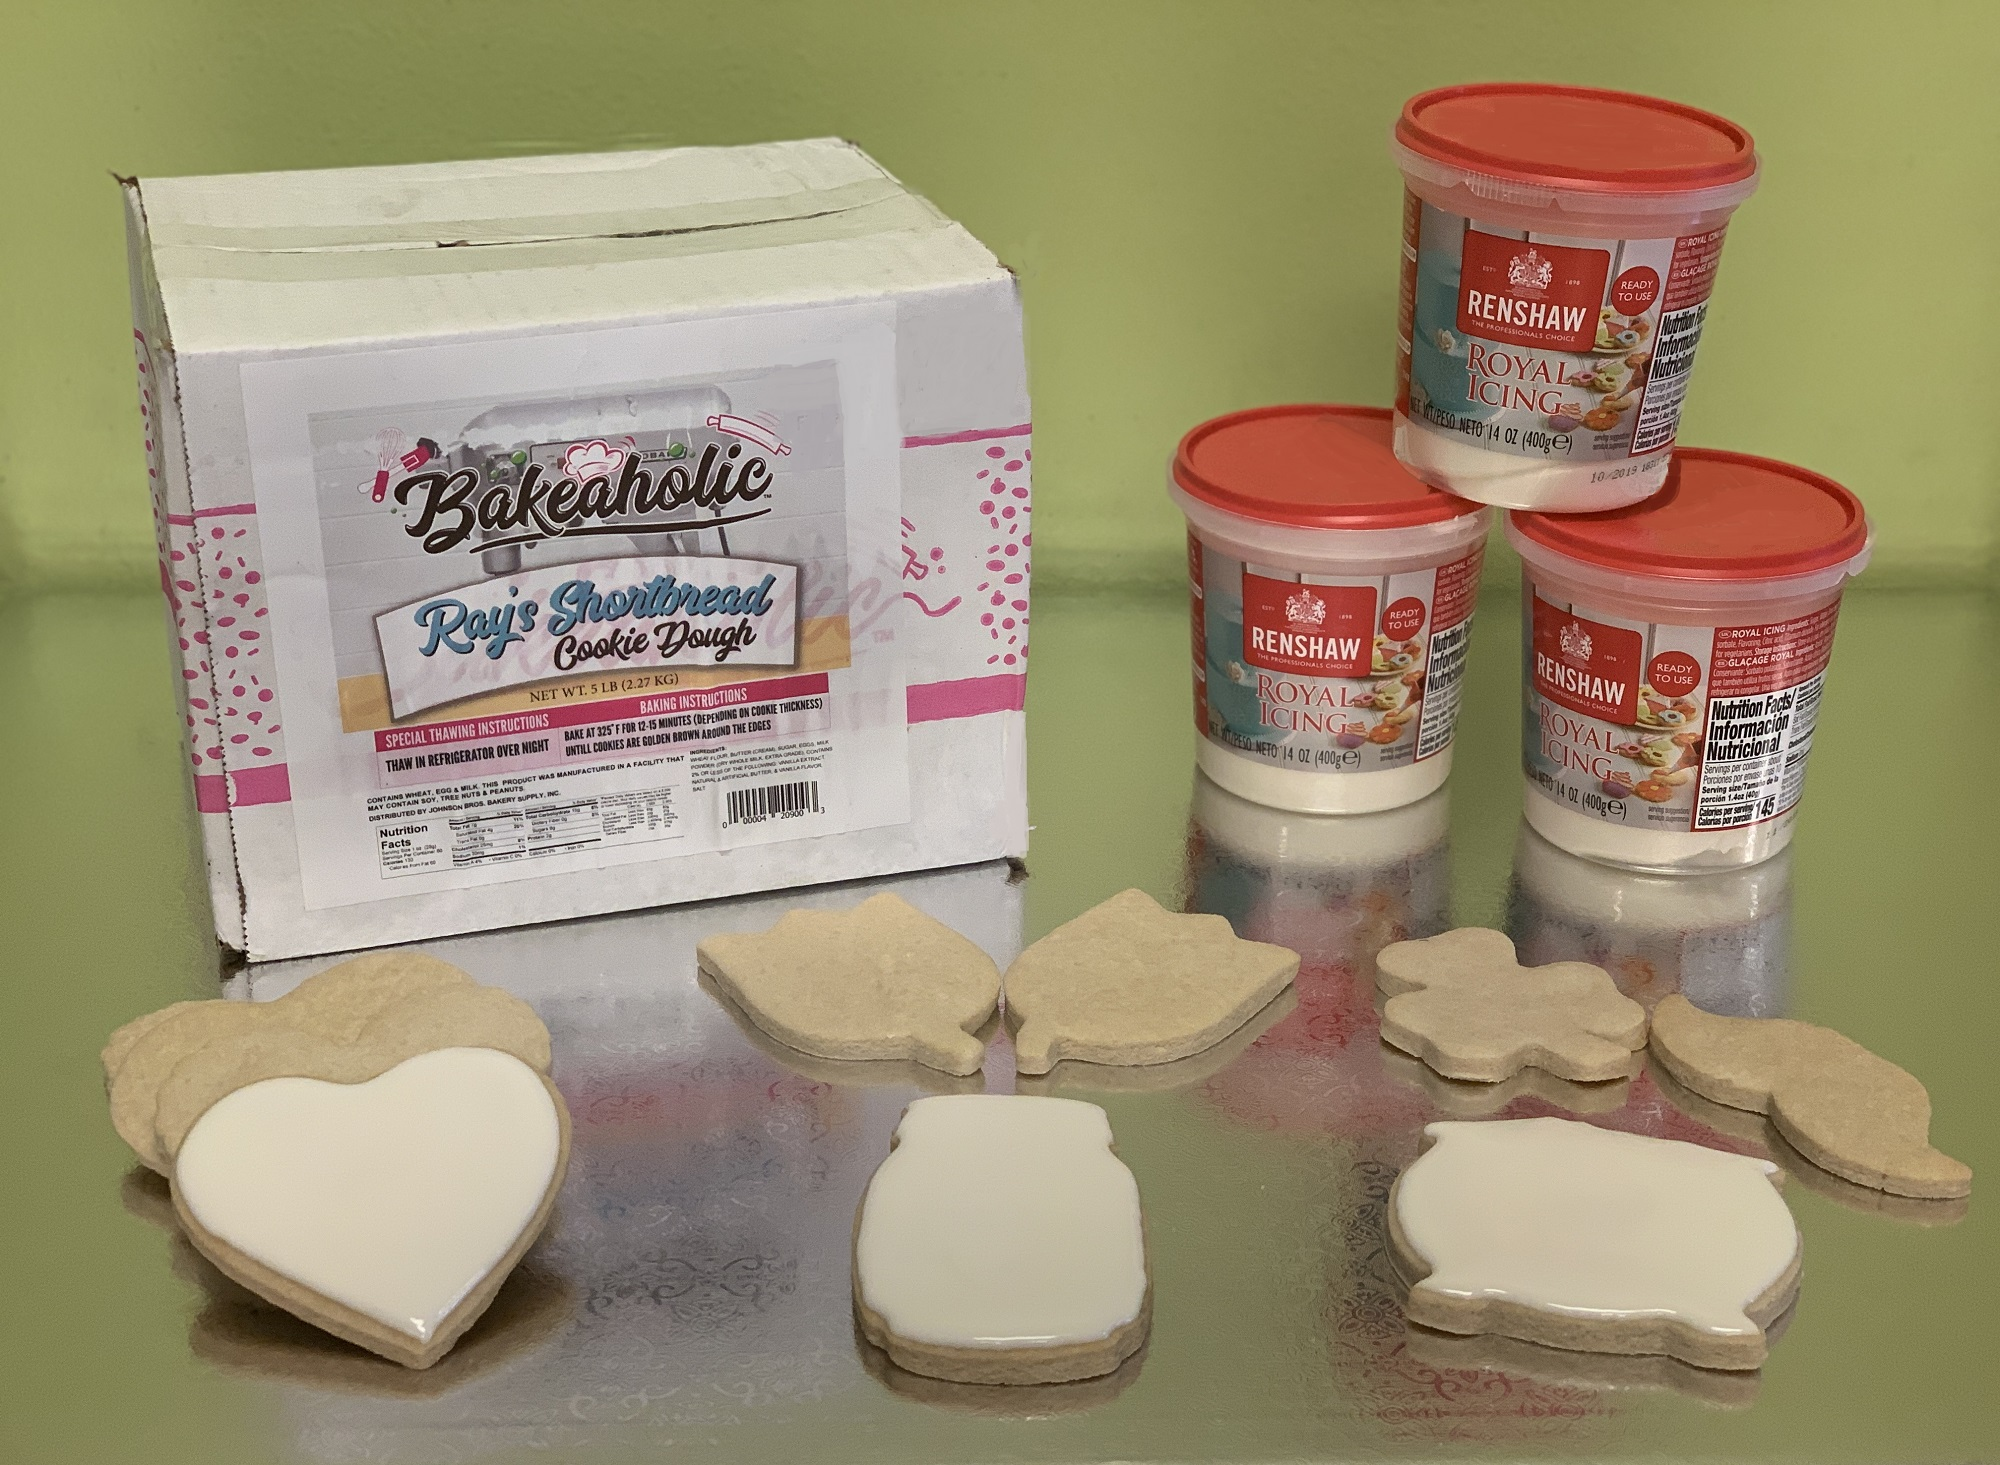 Sample Day: Shortbread Cookies and Renshaw Royal Icing